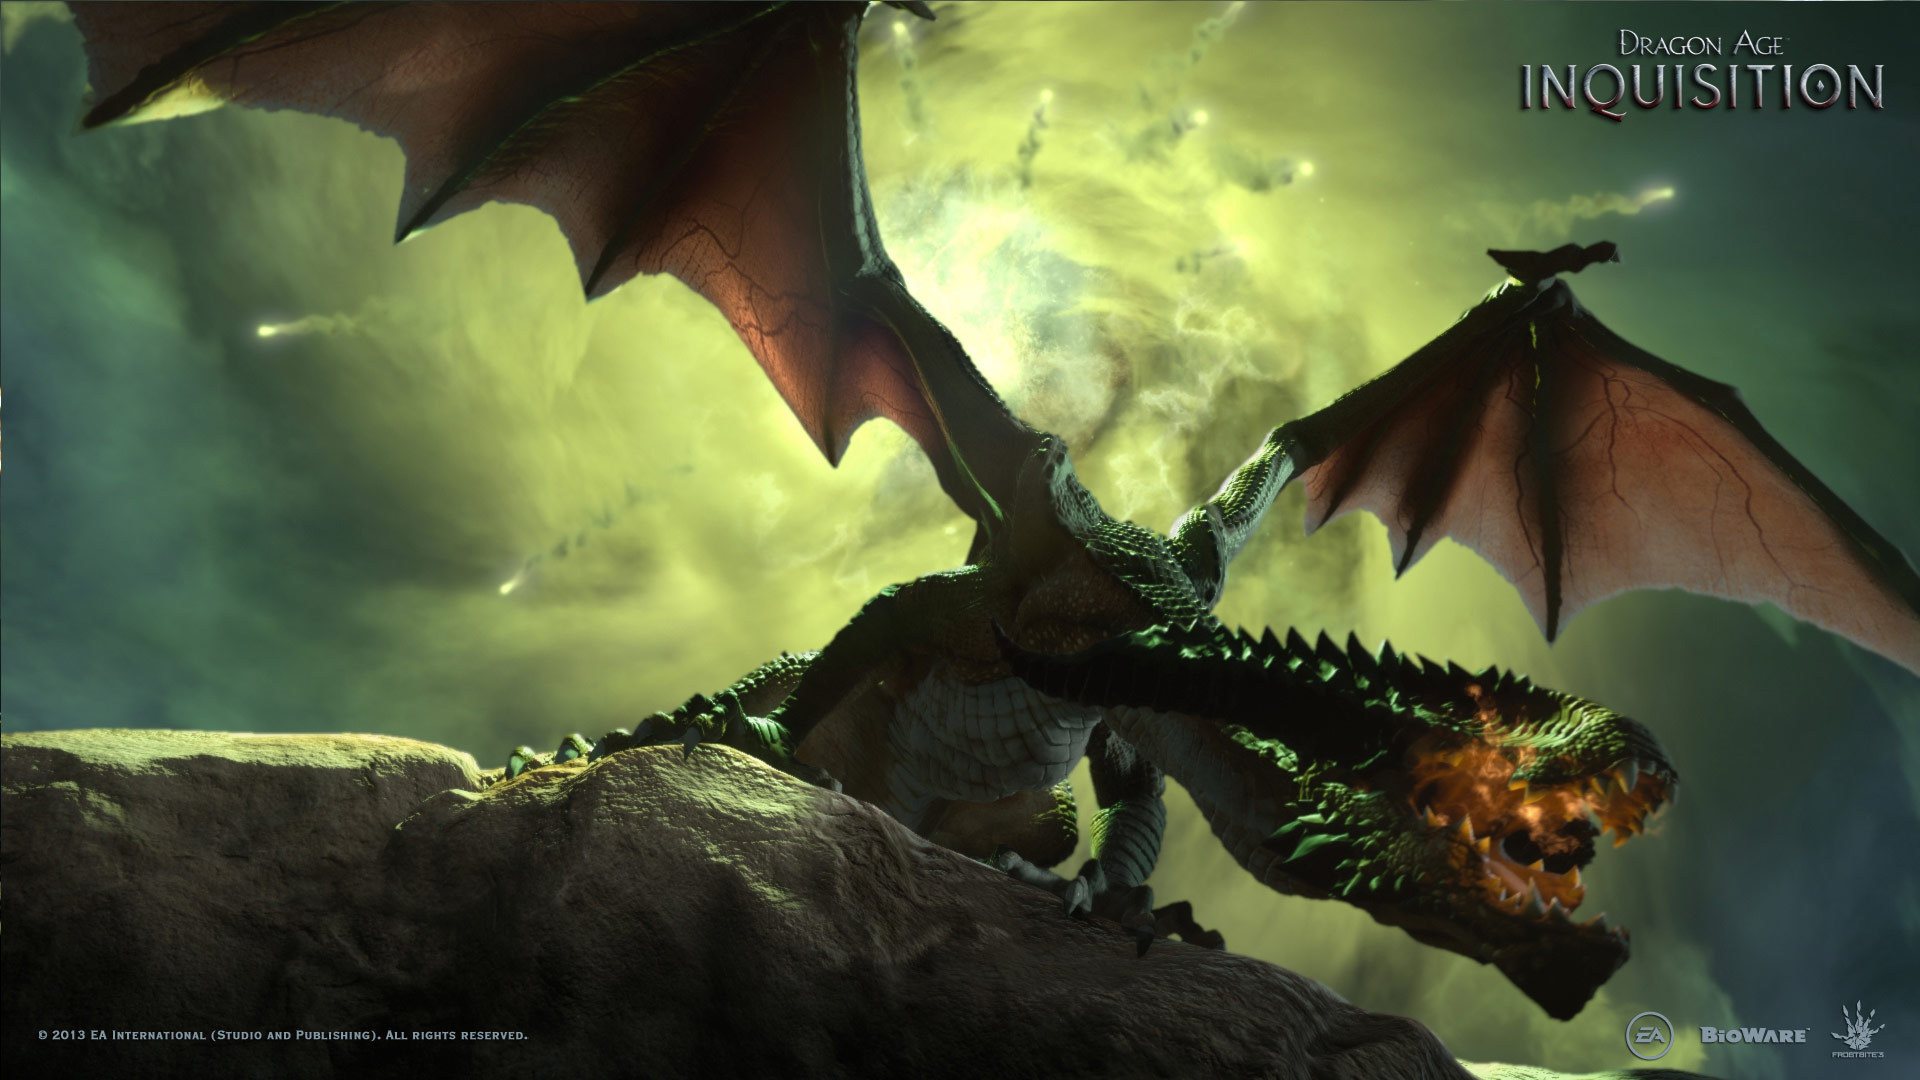 41 Dragon Age Inquisition Wallpapers On Wallpapersafari